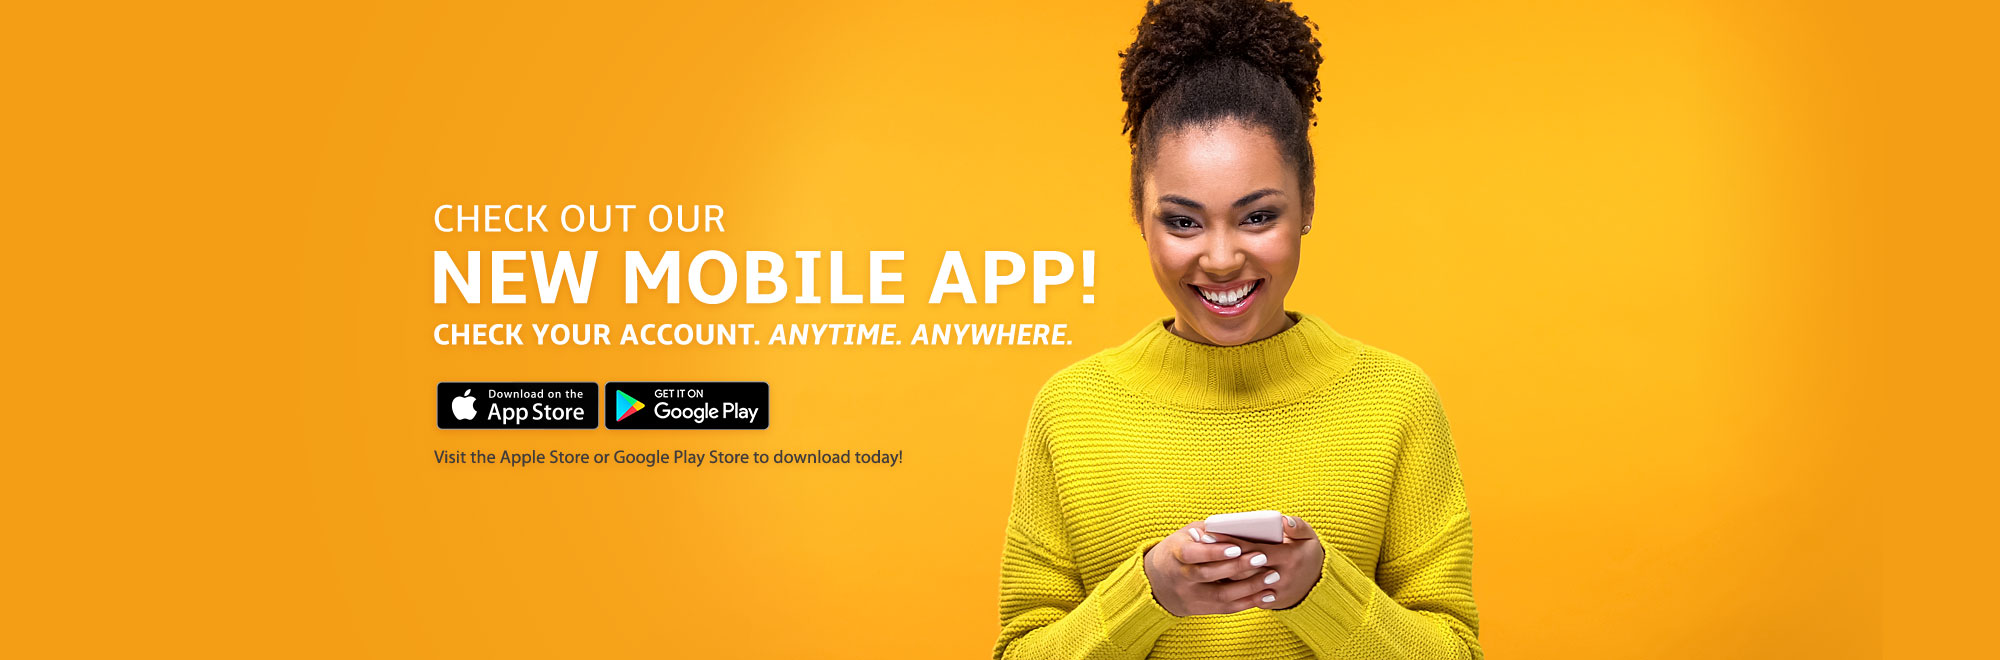 Check out our New Mobile App! Check Your Account. Anytime, Anywhere!